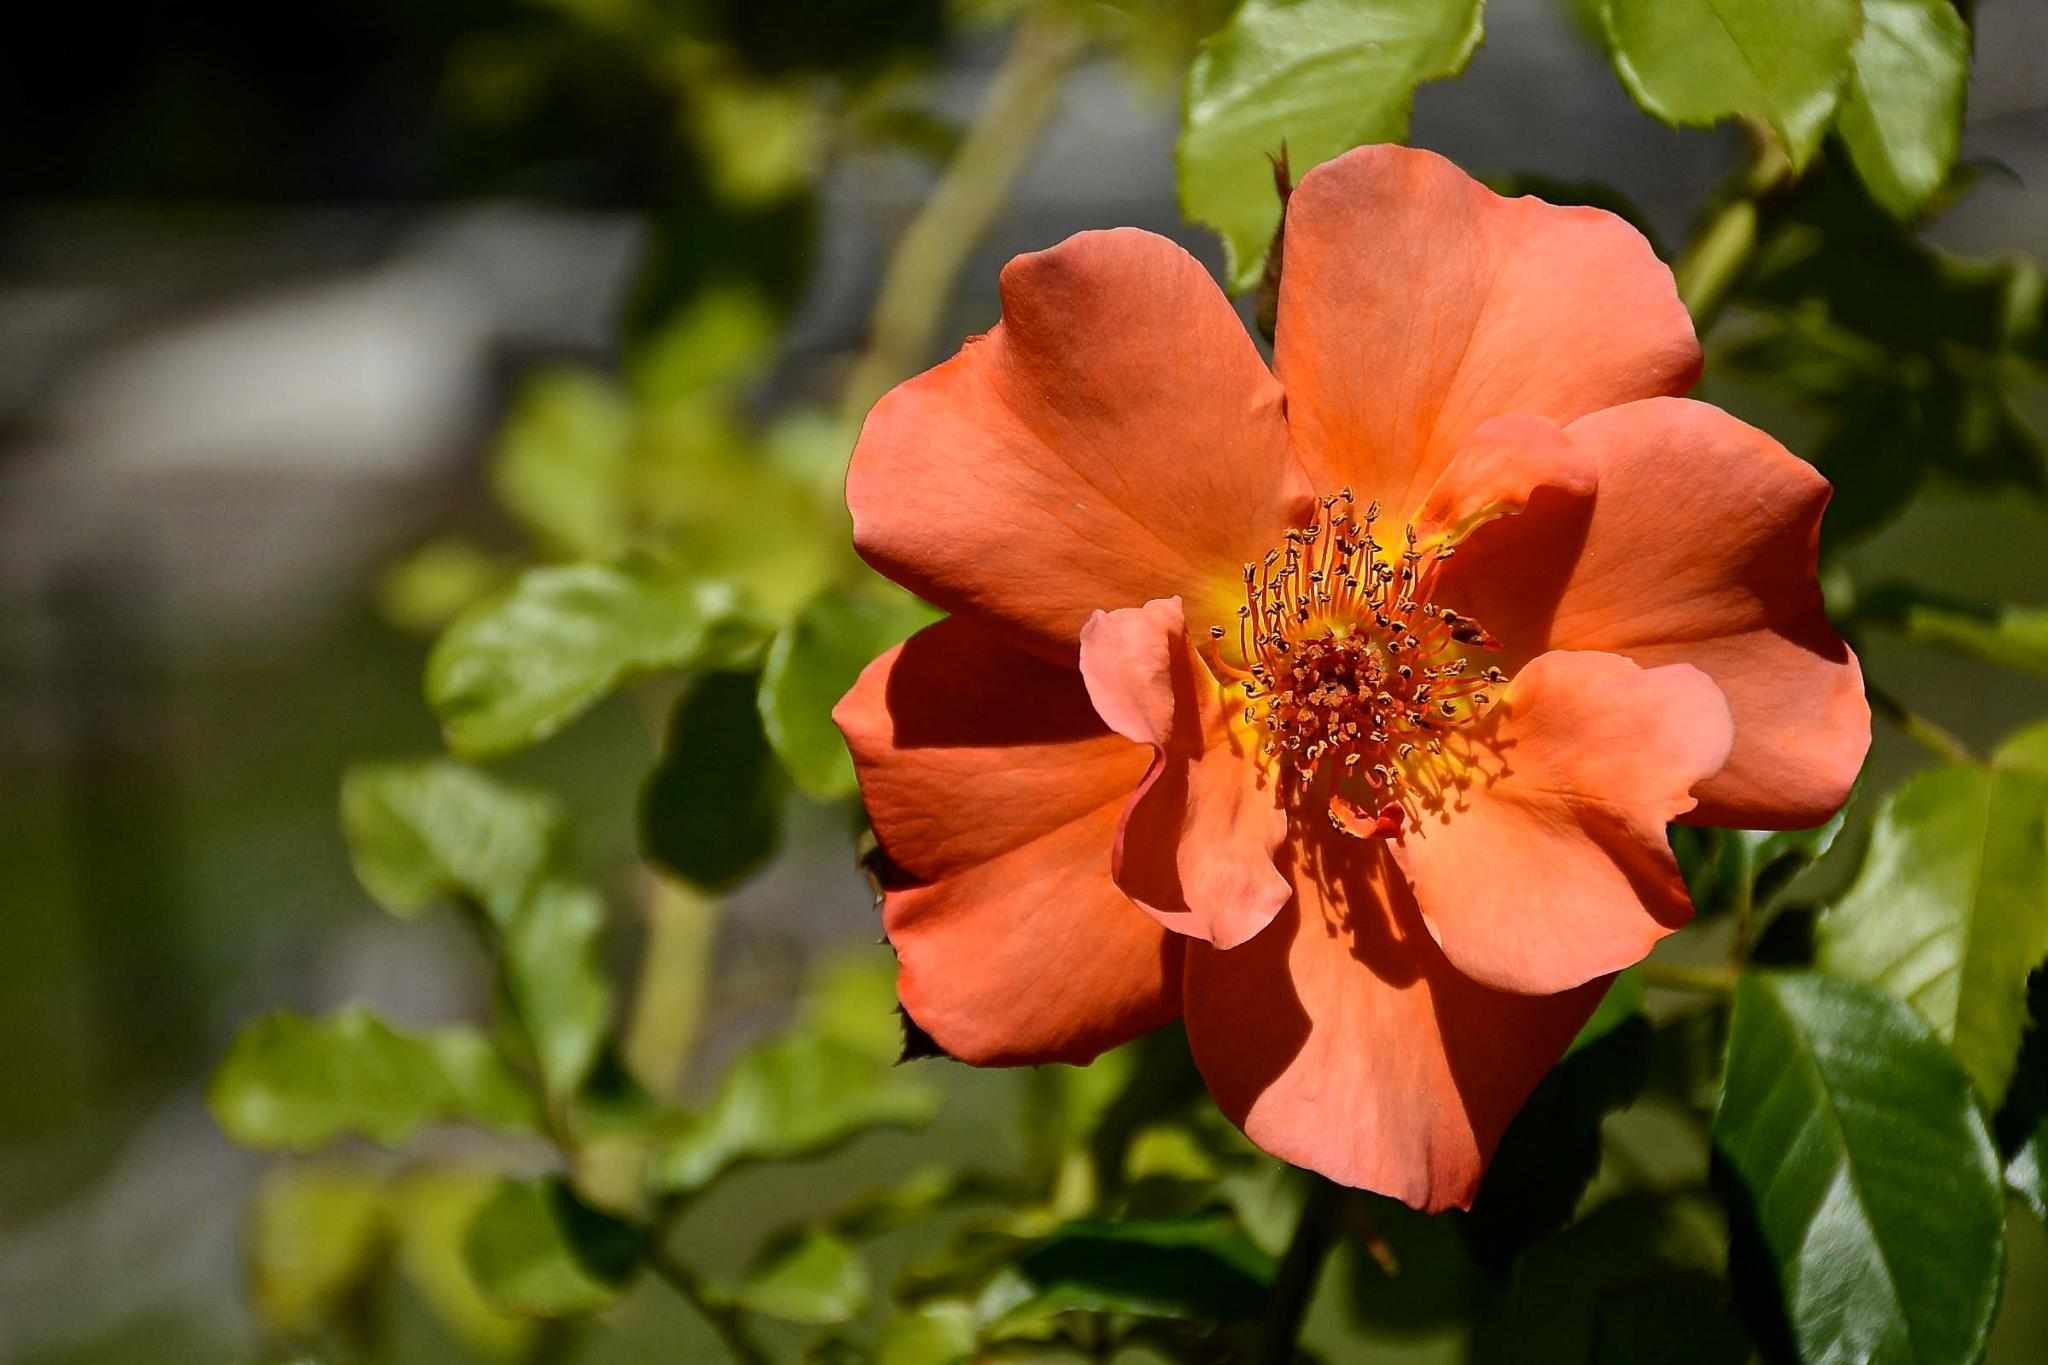 Apricot Rose by Kathy Lebron Photography